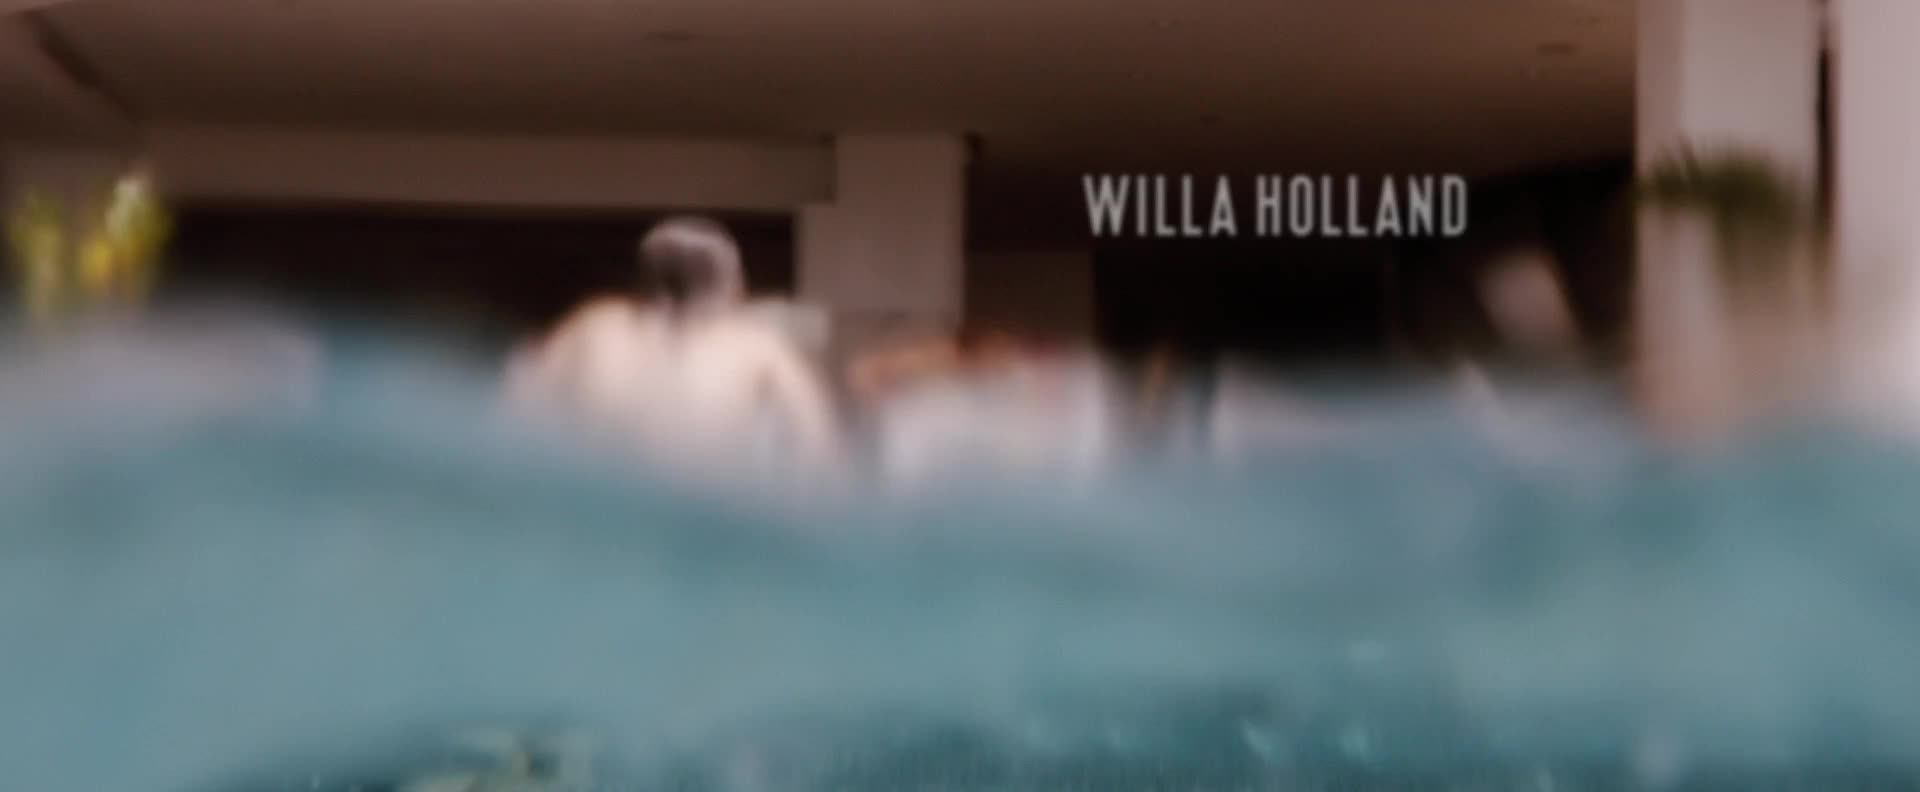 willaholland, Willa Holland in Blood In The Water GIFs